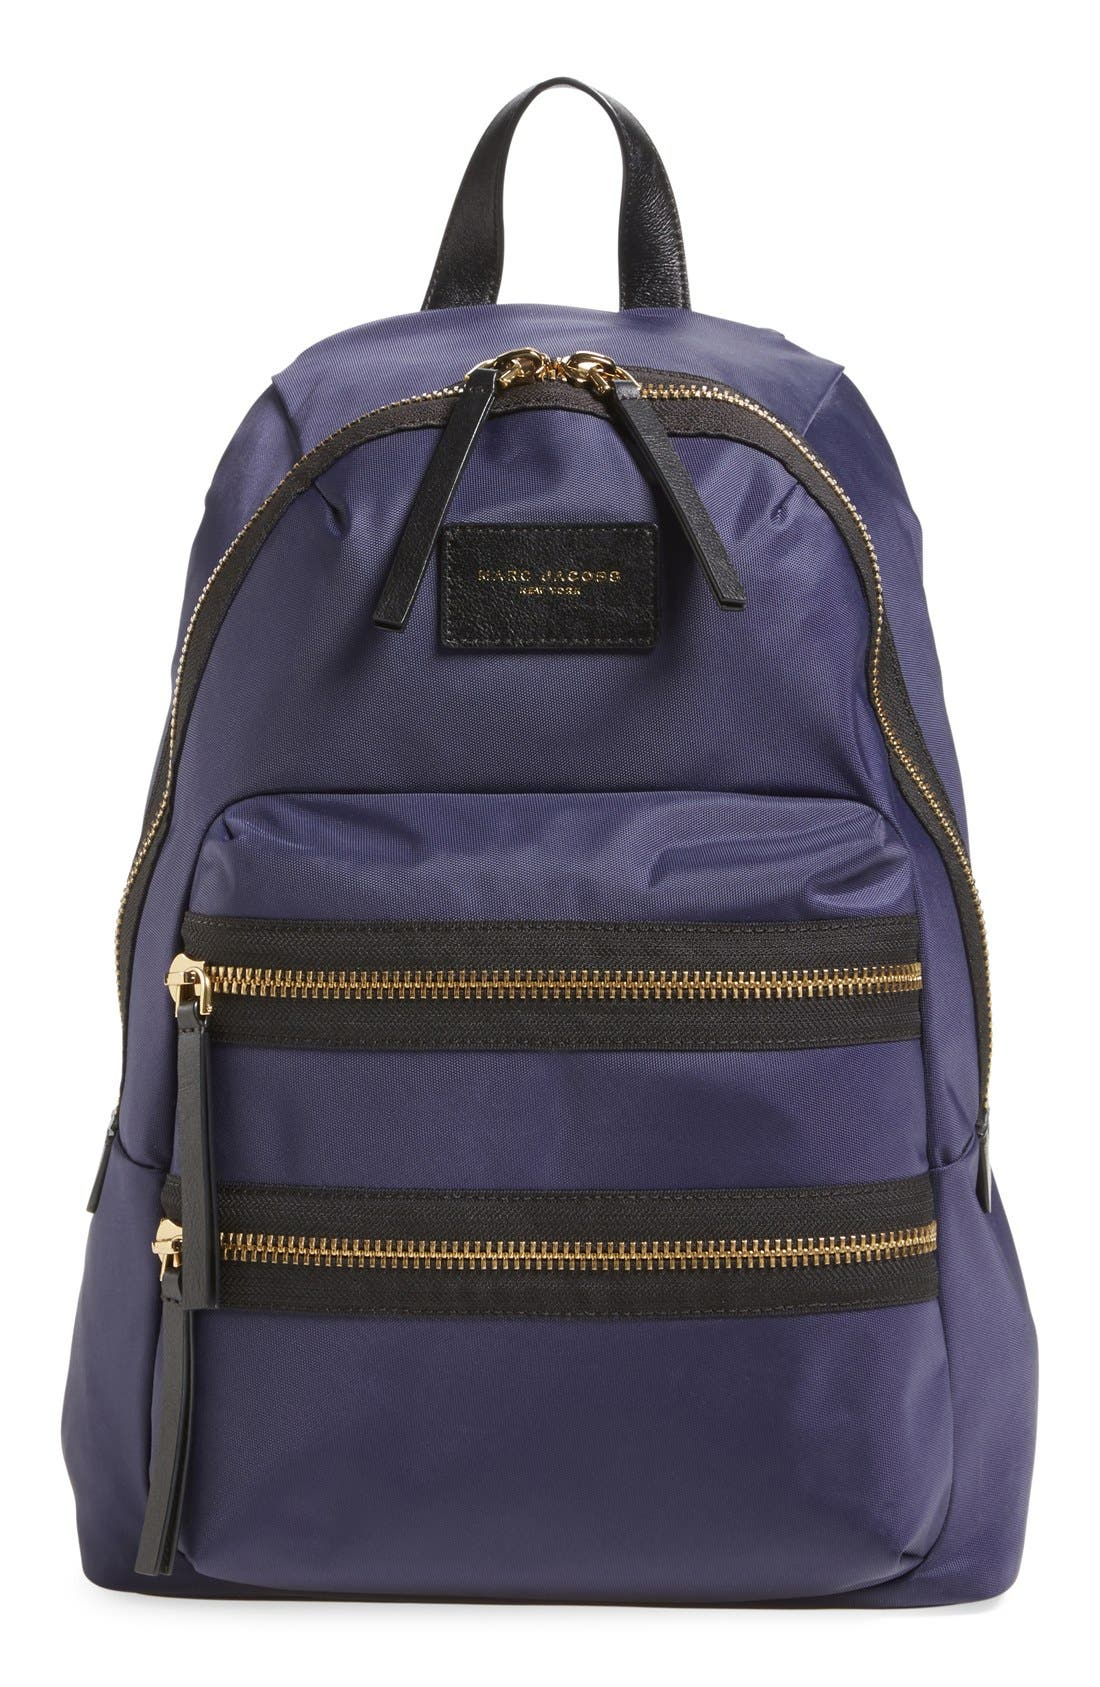 MARC JACOBS 'Biker' Nylon Backpack